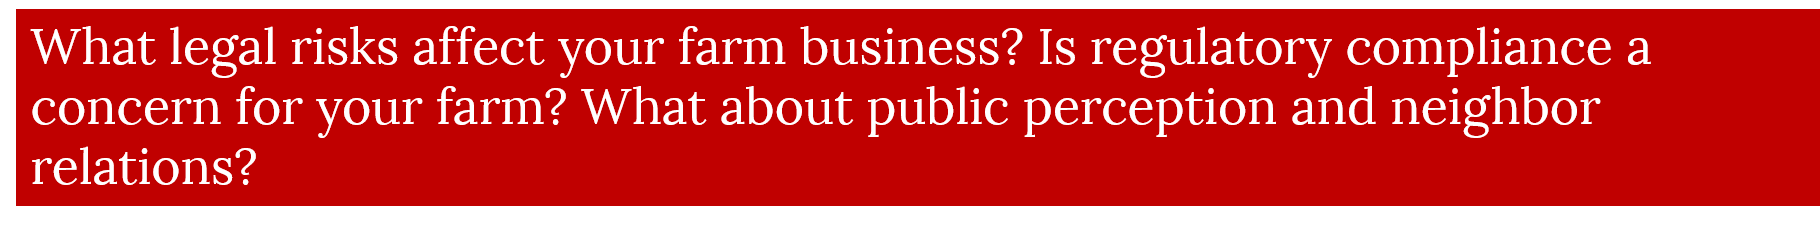 What legal risks affect your farm business? Is regulatory compliance a concern for your farm? What about public perception and neighbor relations?